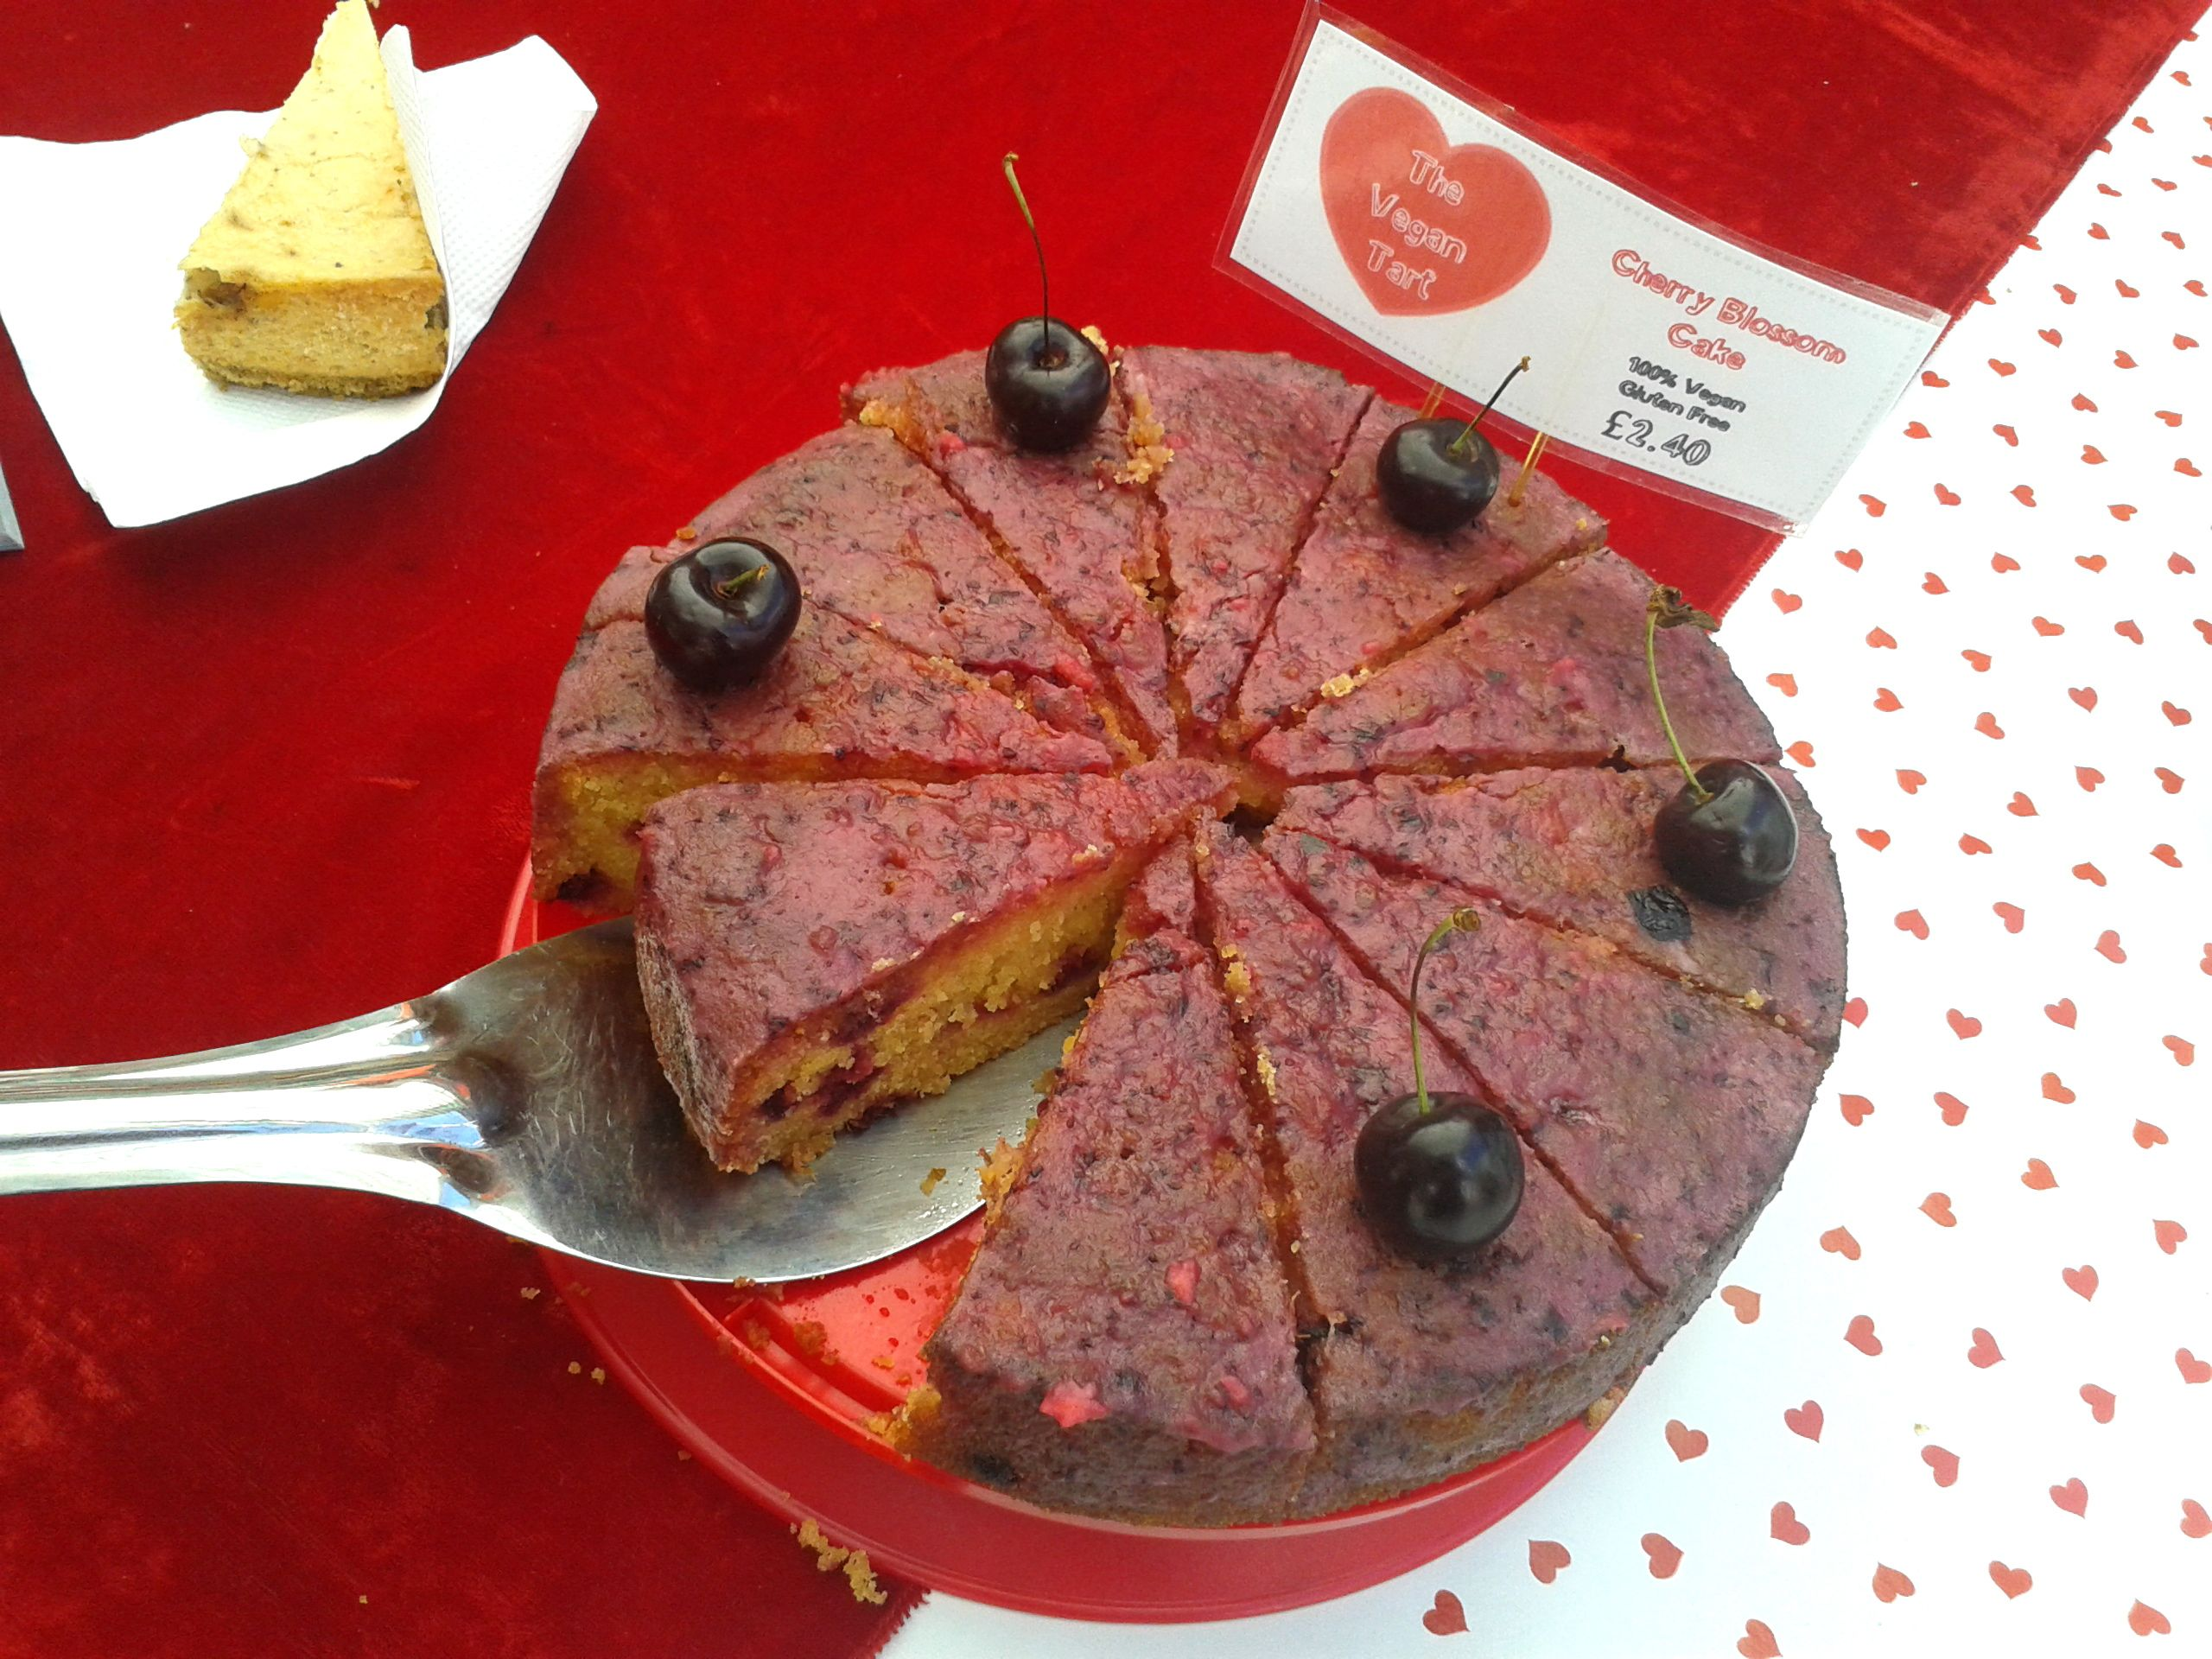 https://i2.wp.com/fatgayvegan.com/wp-content/uploads/2013/08/cherry-blossom-cake.jpg?fit=2560%2C1920&ssl=1